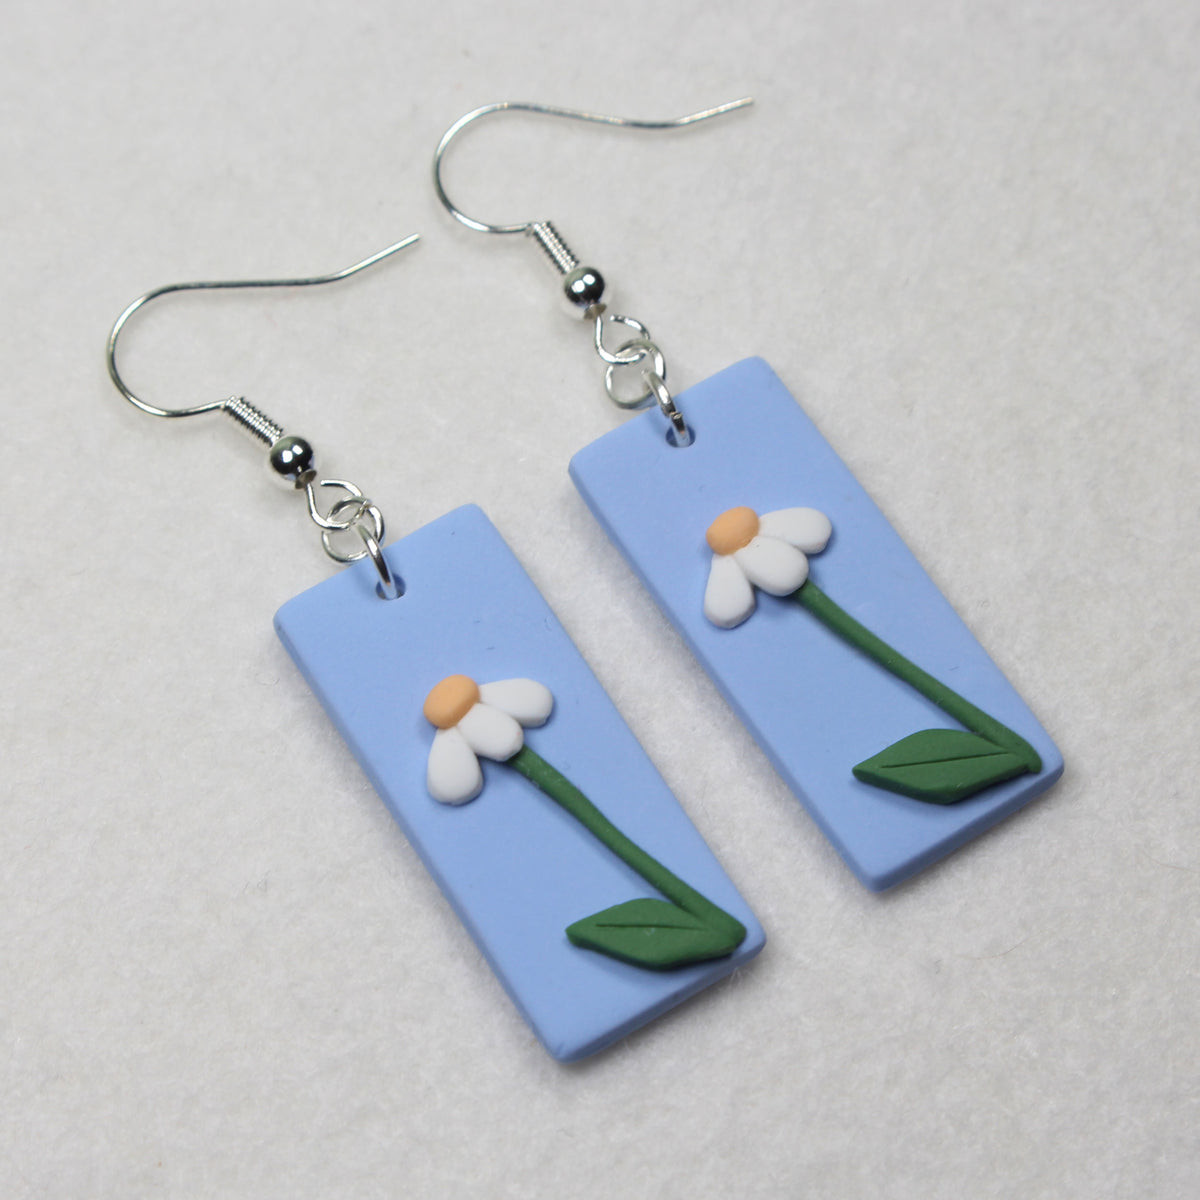 simple daisy earrings, with stem and leaves, standing tall on a pastel blue background as part of the daisy fields polymer clay earrings collection